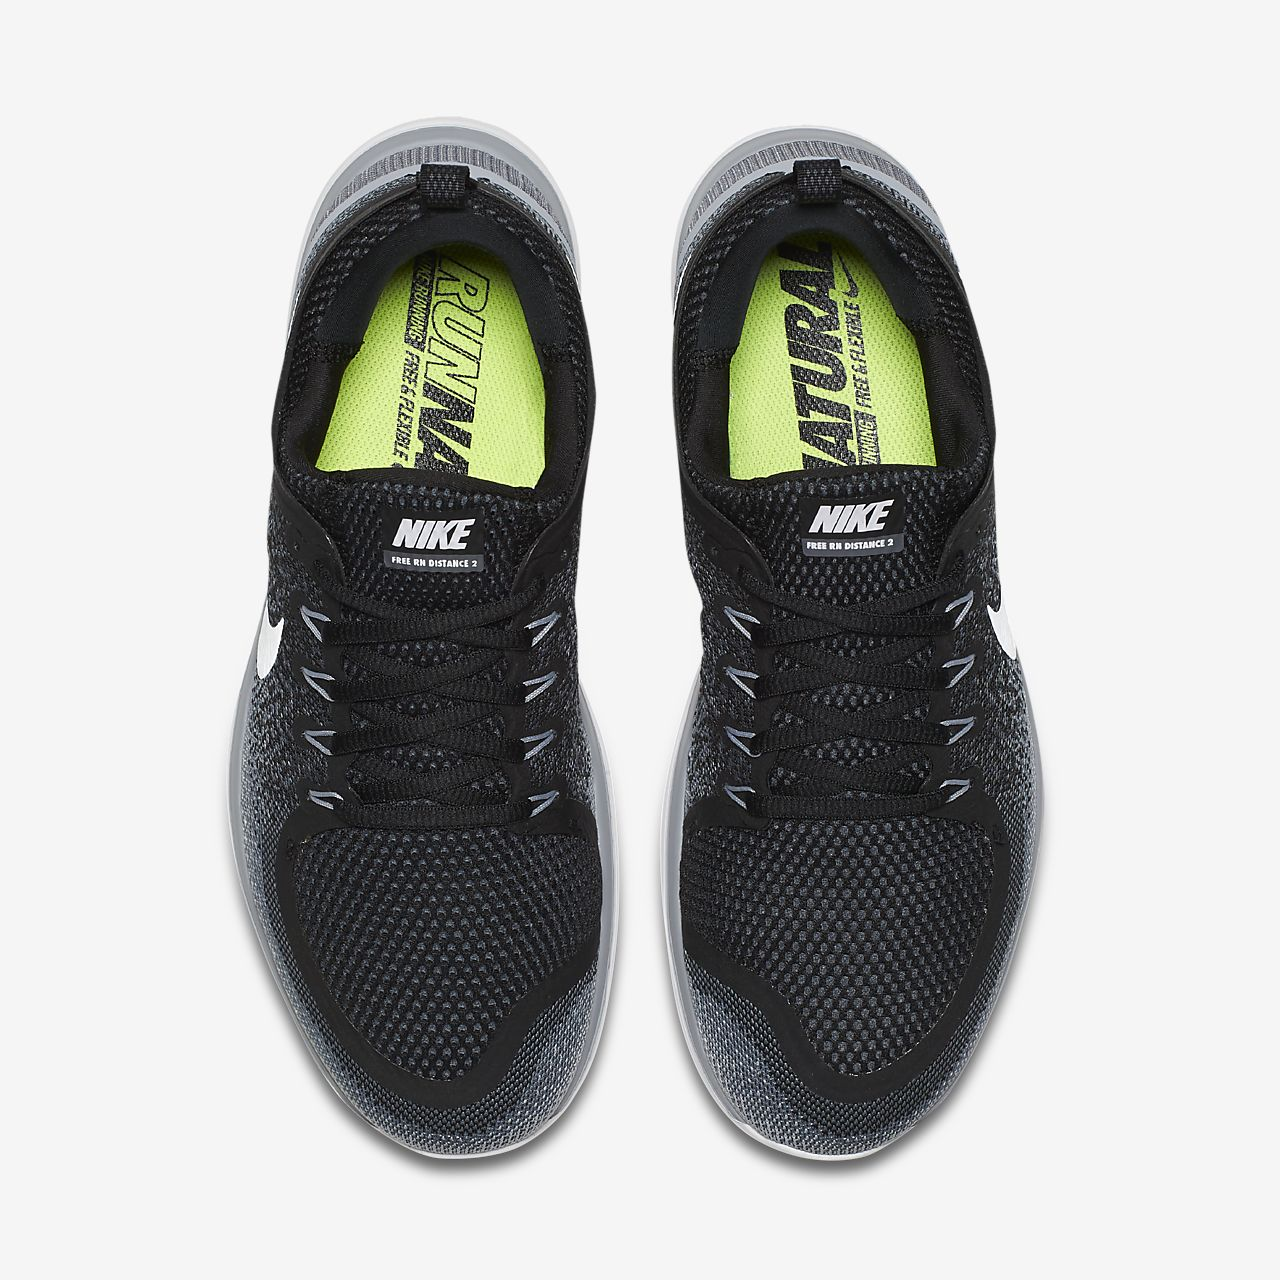 designer fashion e02a8 7137a ... are nike free run 5.0 good for long distance running nike free rn  distance 2 mens .